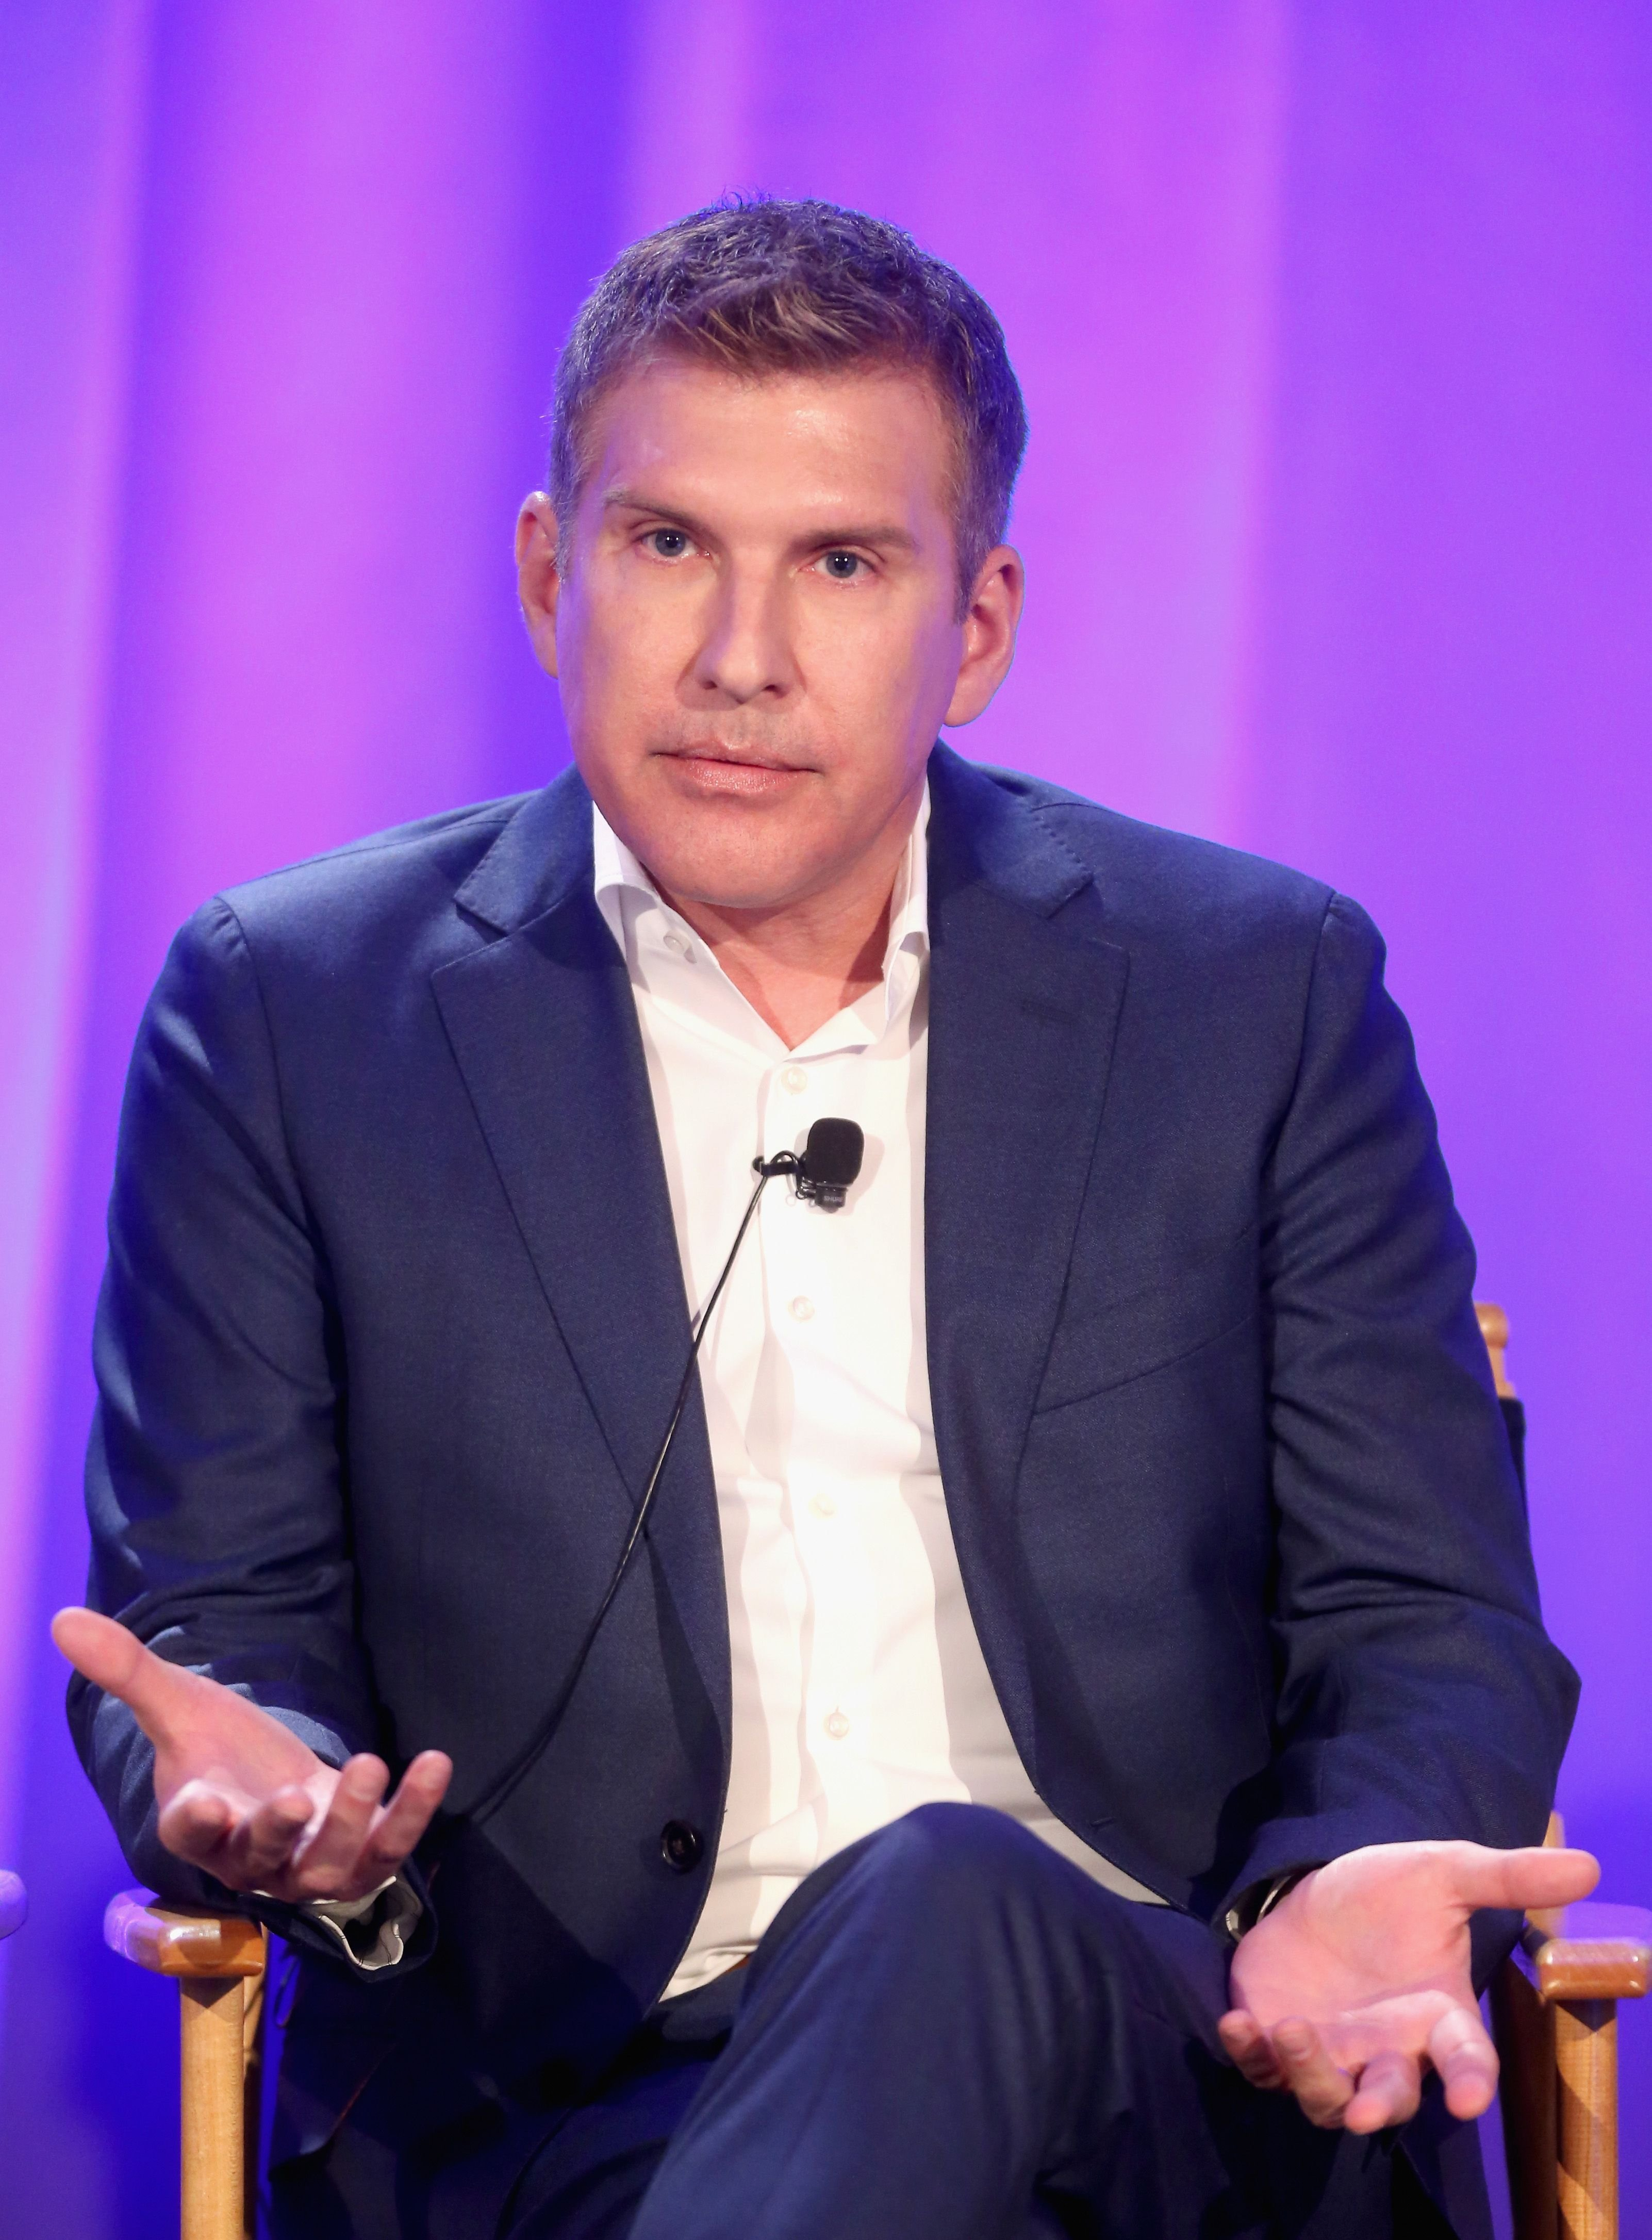 Todd Chrisley at the 'Chrisley Knows Best' panel at the 2016 NBCUniversal Summer Press Day at Four Seasons Hotel Westlake Village on April 1, 2016 in Westlake Village, California | Photo: Getty Images